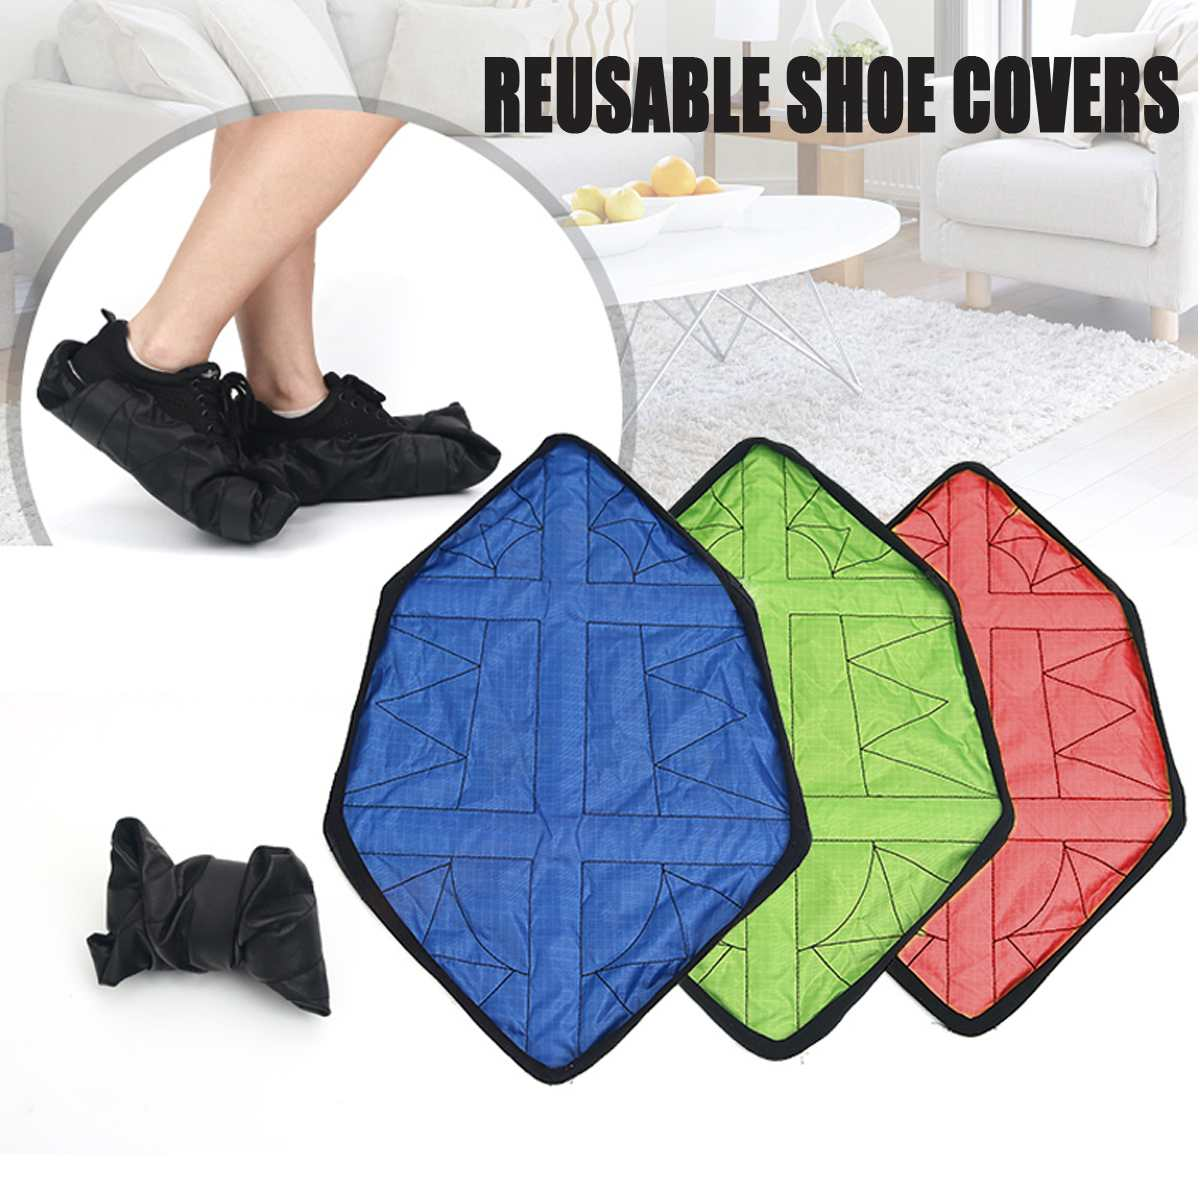 Reusable Shoe Covers - shopaholicsonlyco